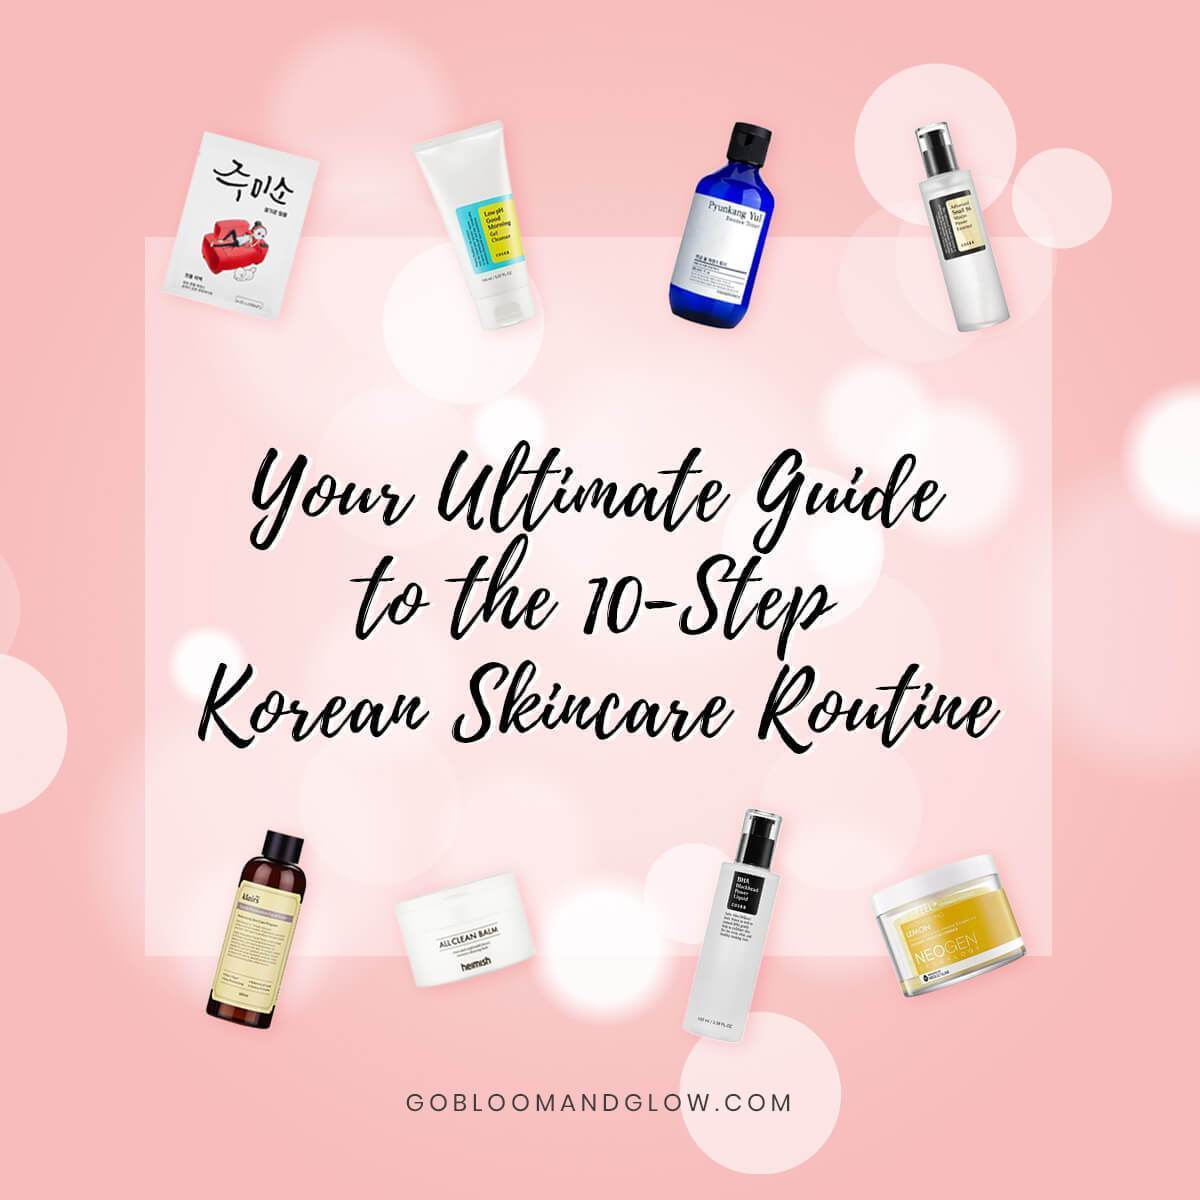 your ultimate guide to the 10-step korean skincare routine